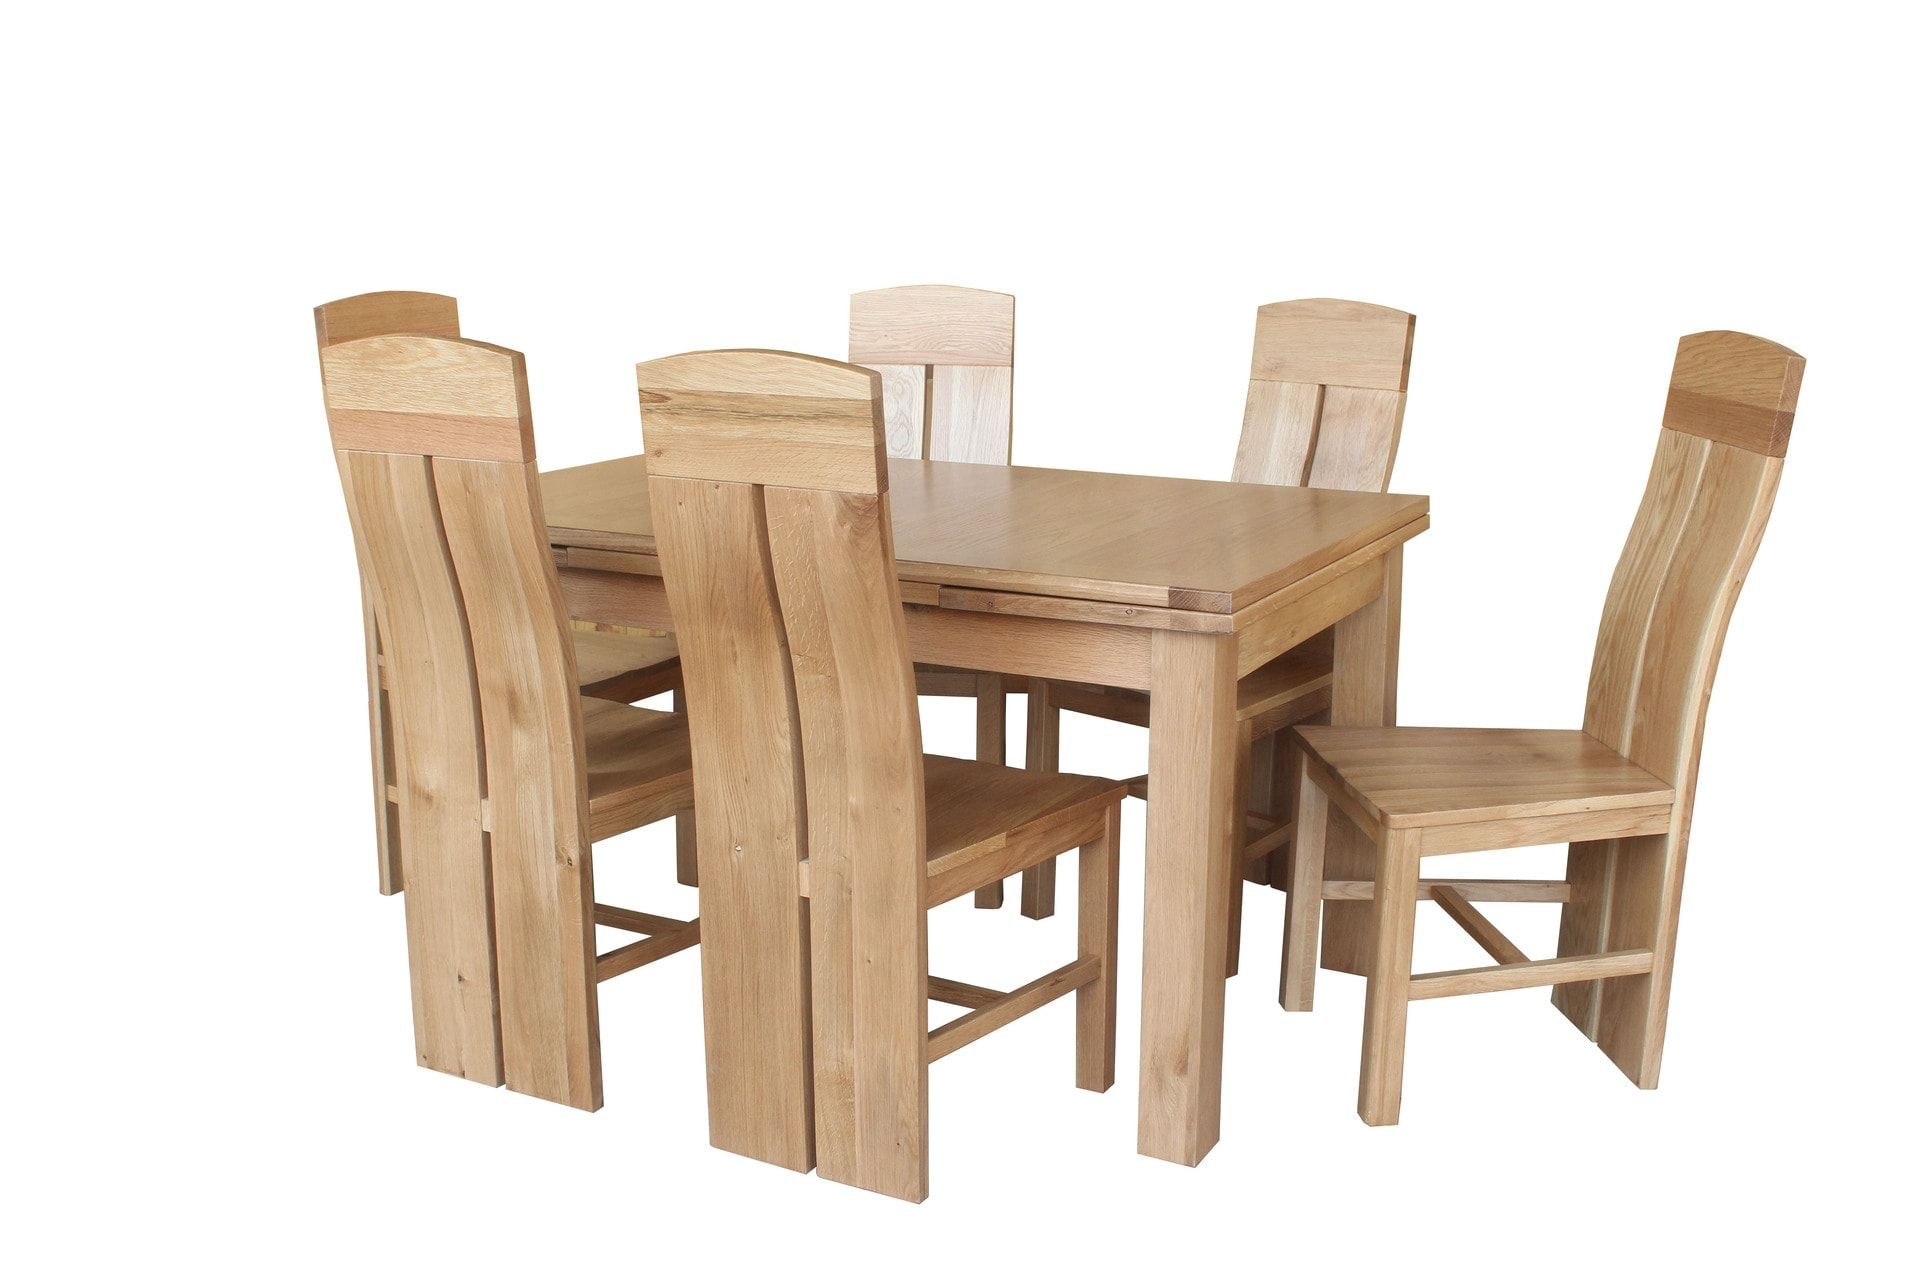 Chair Upholstered Table Dining Dining Set Sets Table